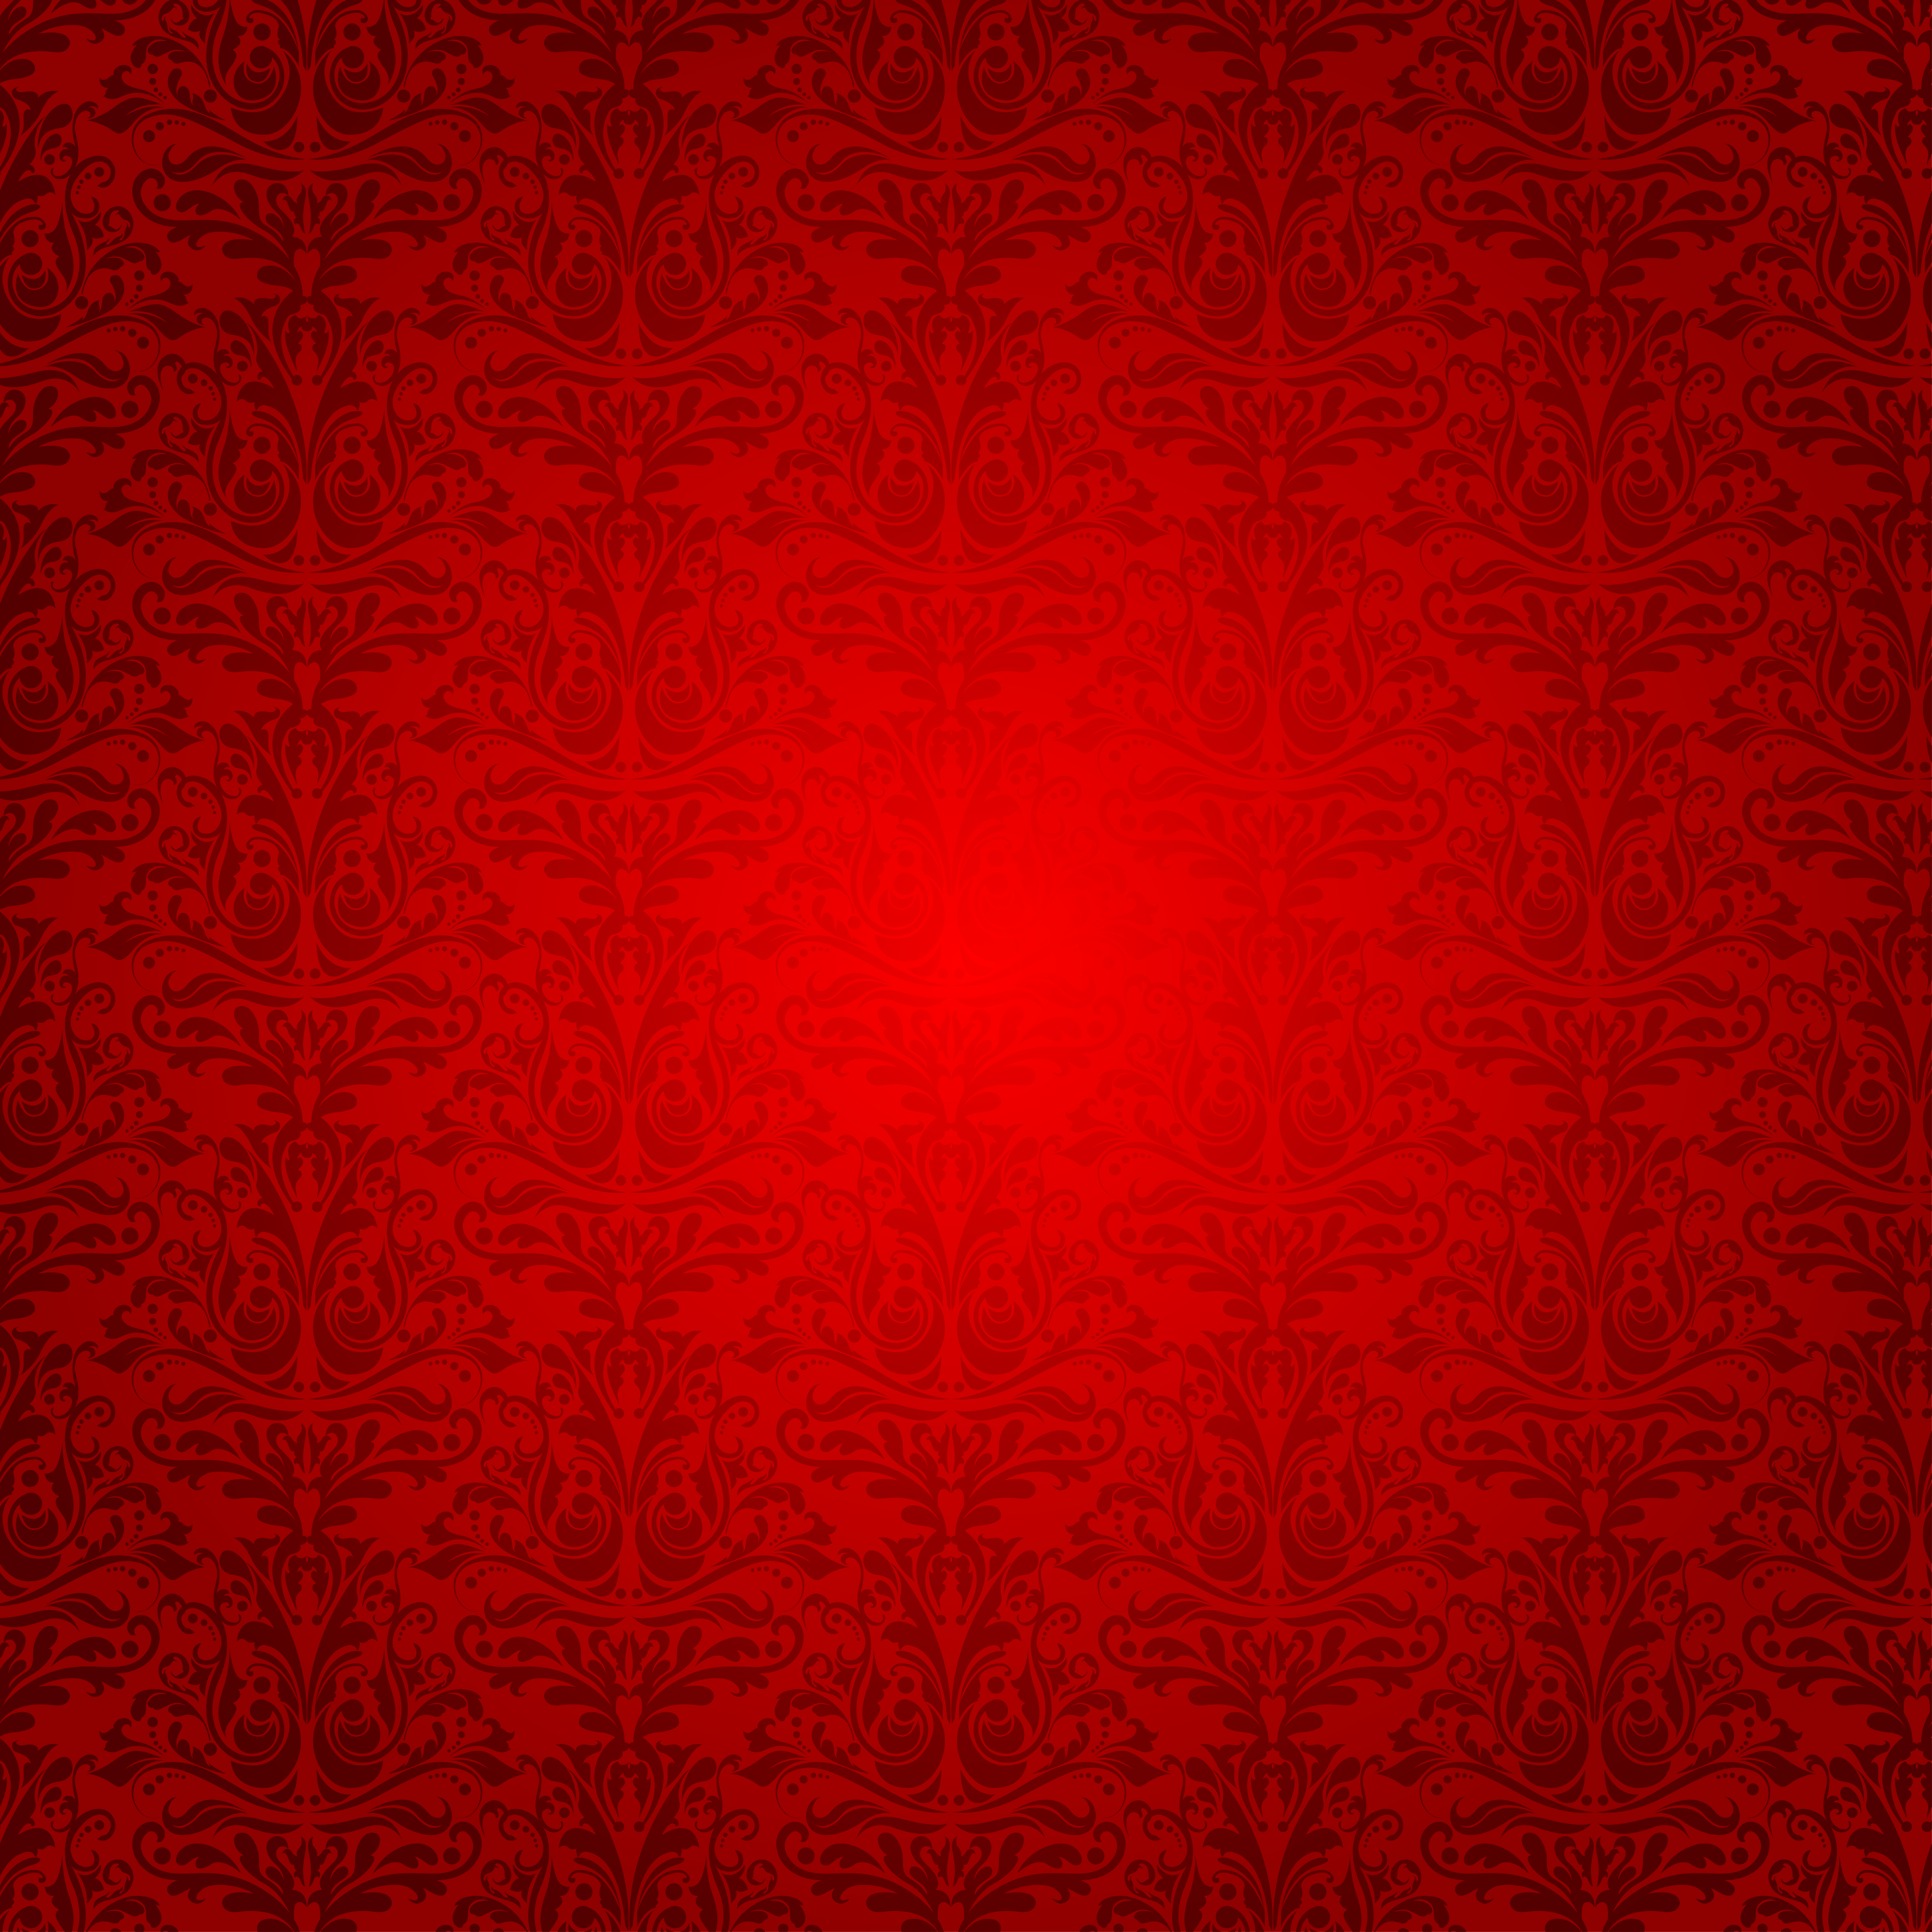 Red Backgrounds Png Free Red Backgrounds Png Transparent Images 70964 Pngio